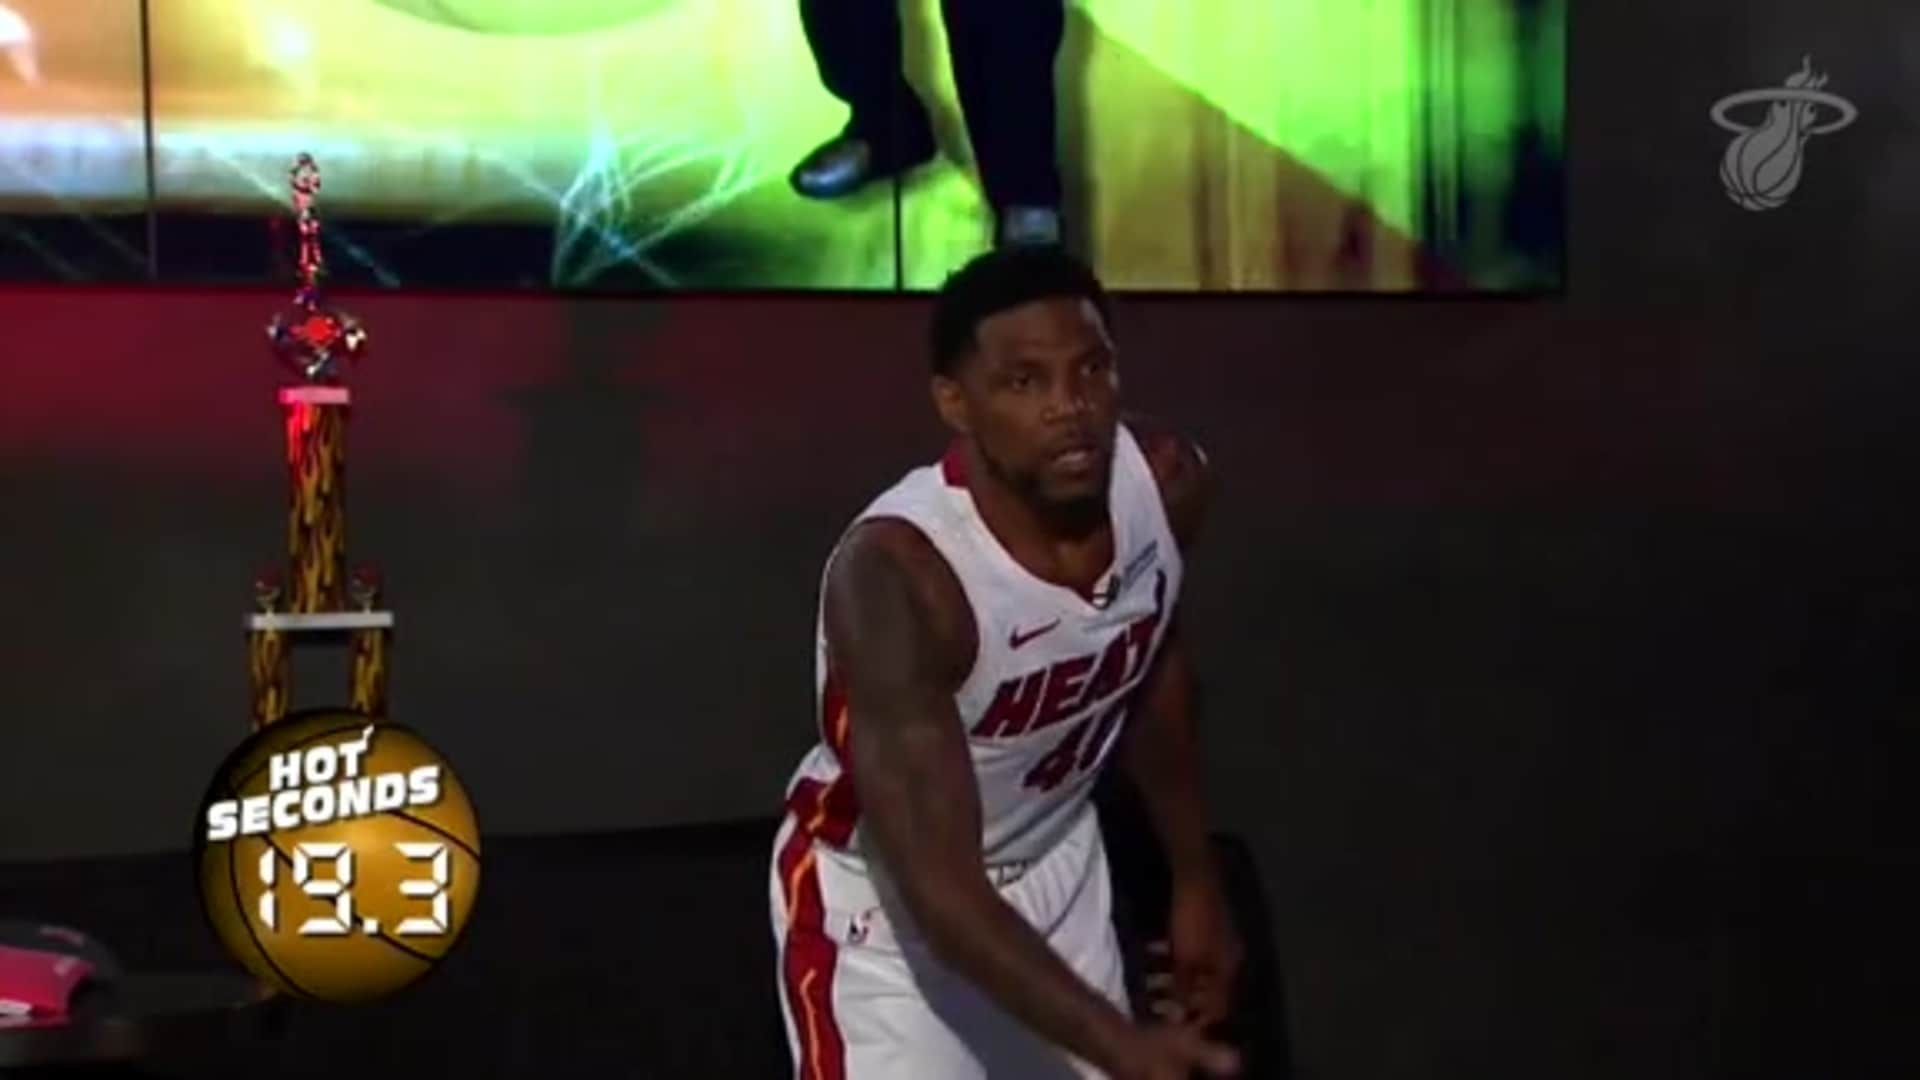 Hot Seconds With Jax - Udonis Haslem